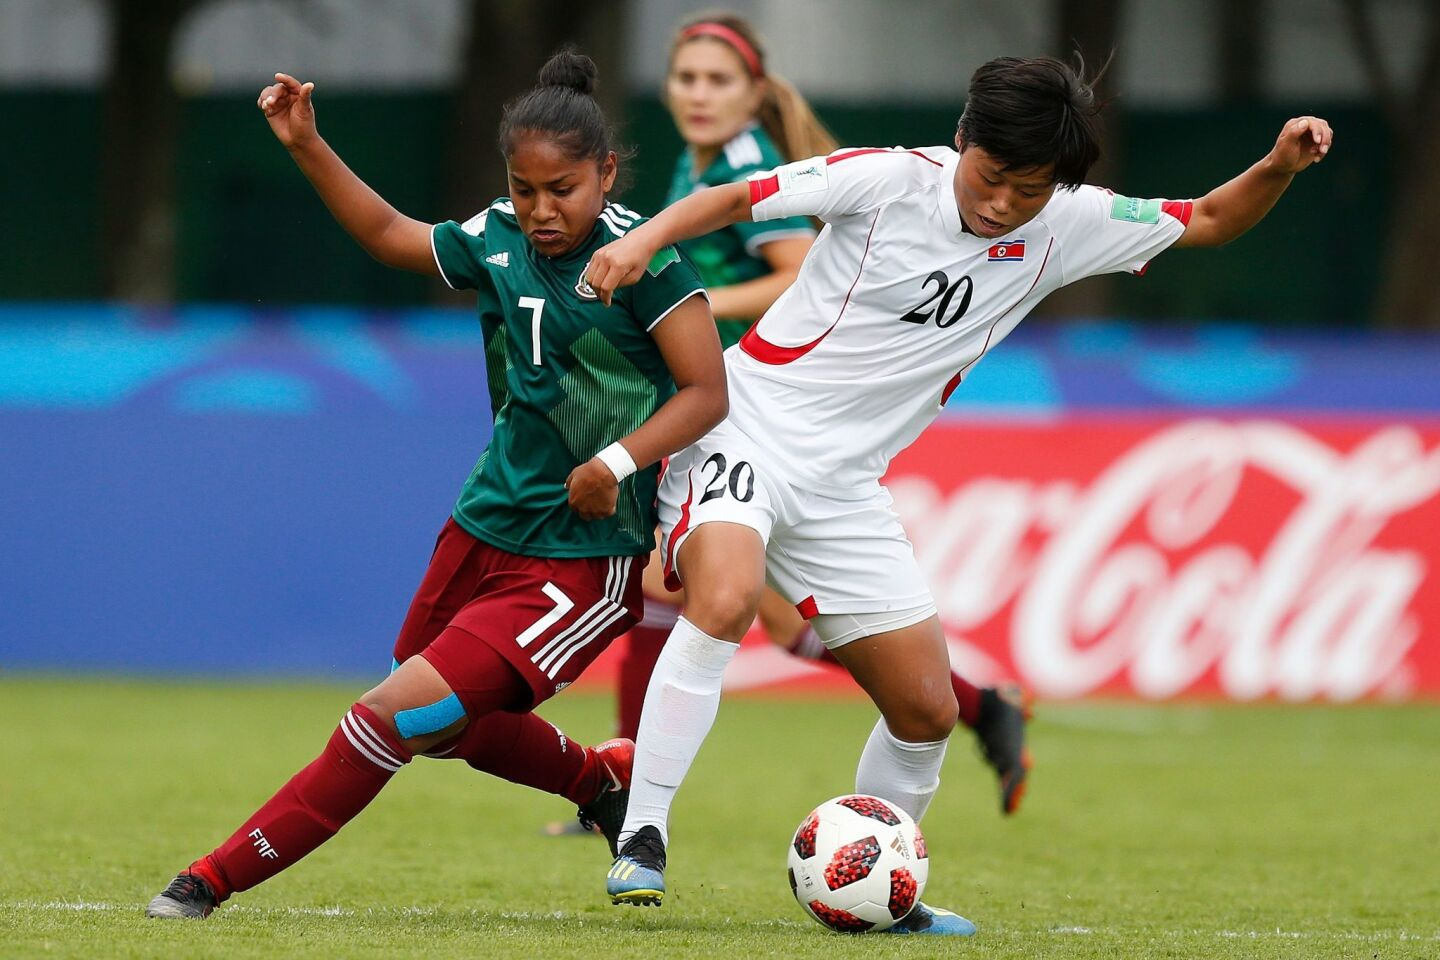 Mexico's Belen Cruz vies for the ball with Korea's Kum Ok Choe during the Women's World Cup U20 Group B football match between North Korea and Mexico at the Clos Gastel stadium in Dinan, northwestern France, on August 8, 2018. (Photo by CHARLY TRIBALLEAU / AFP)CHARLY TRIBALLEAU/AFP/Getty Images ** OUTS - ELSENT, FPG, CM - OUTS * NM, PH, VA if sourced by CT, LA or MoD **